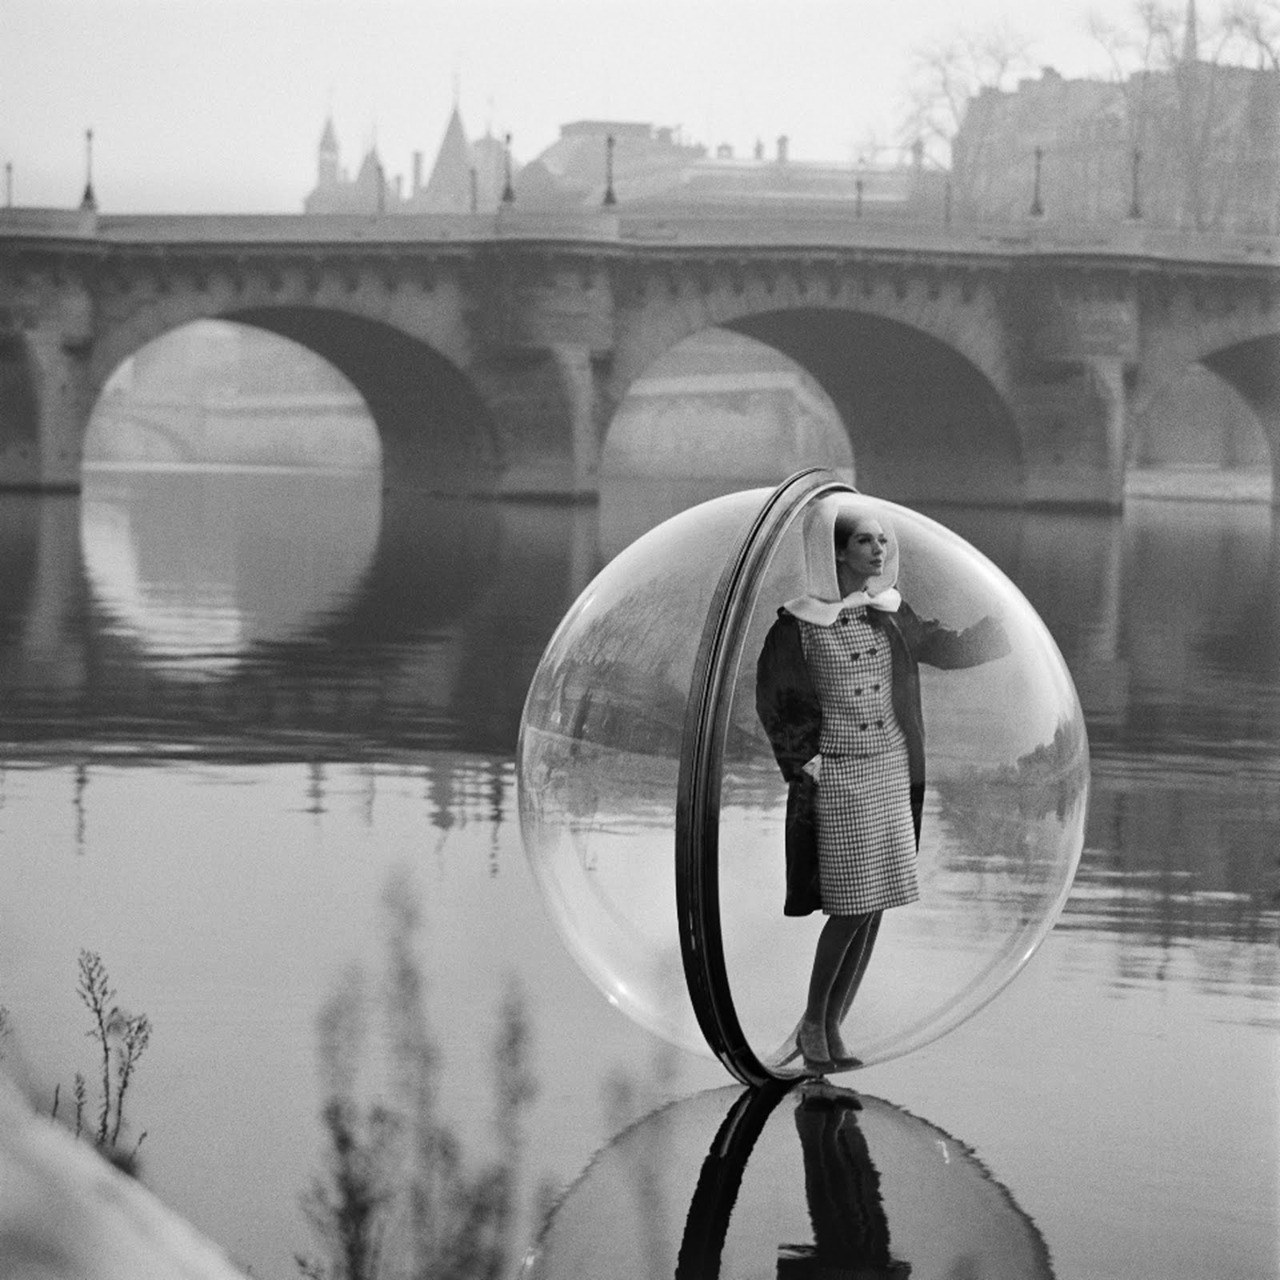 Photo credit: Melvin Sokolsky